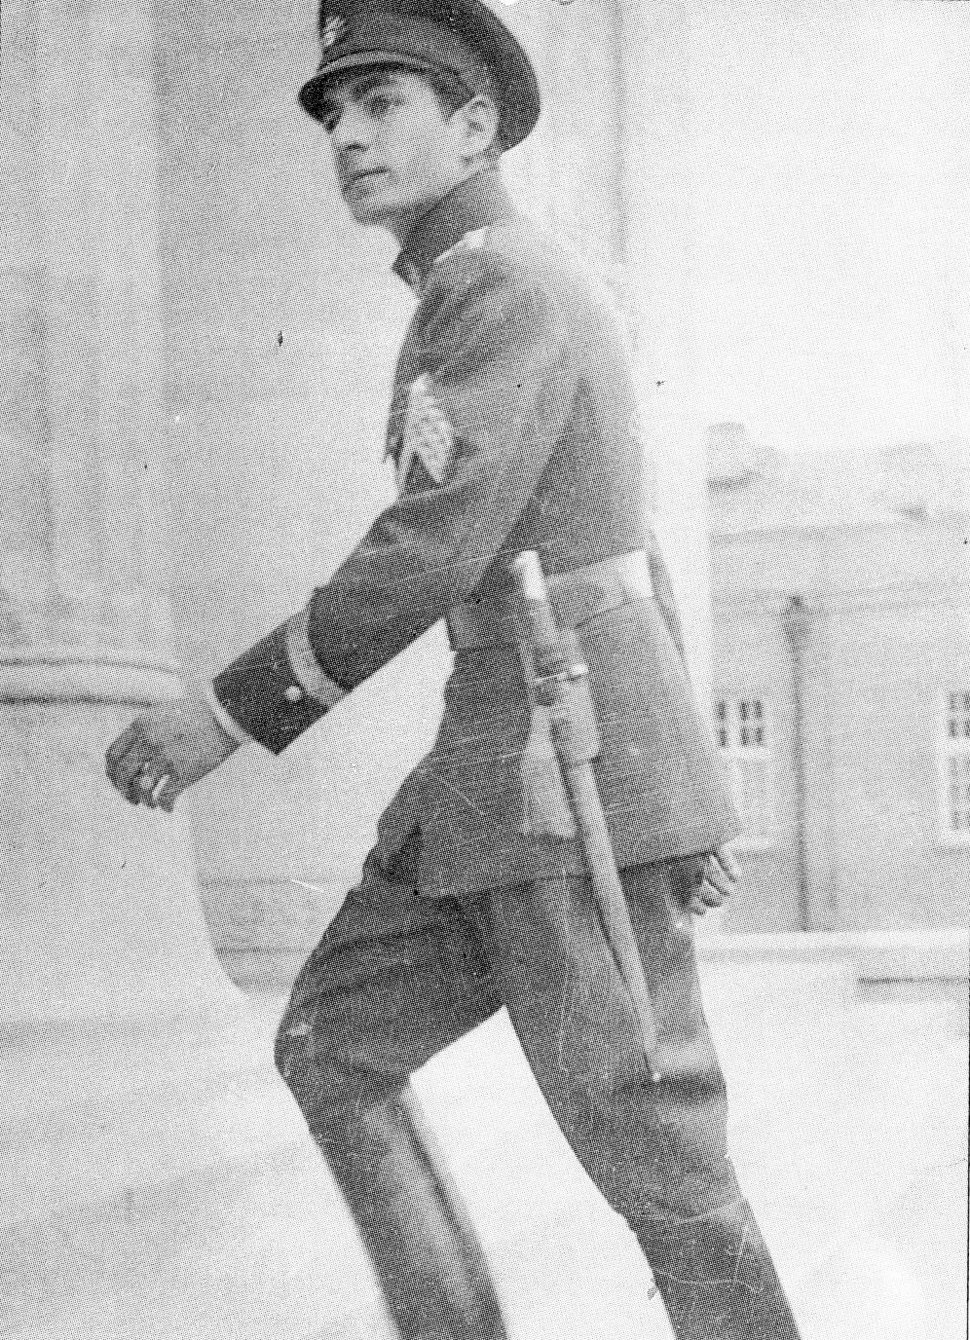 Mohammad Reza Pahlavi Entering a Military School, Tehran 1938